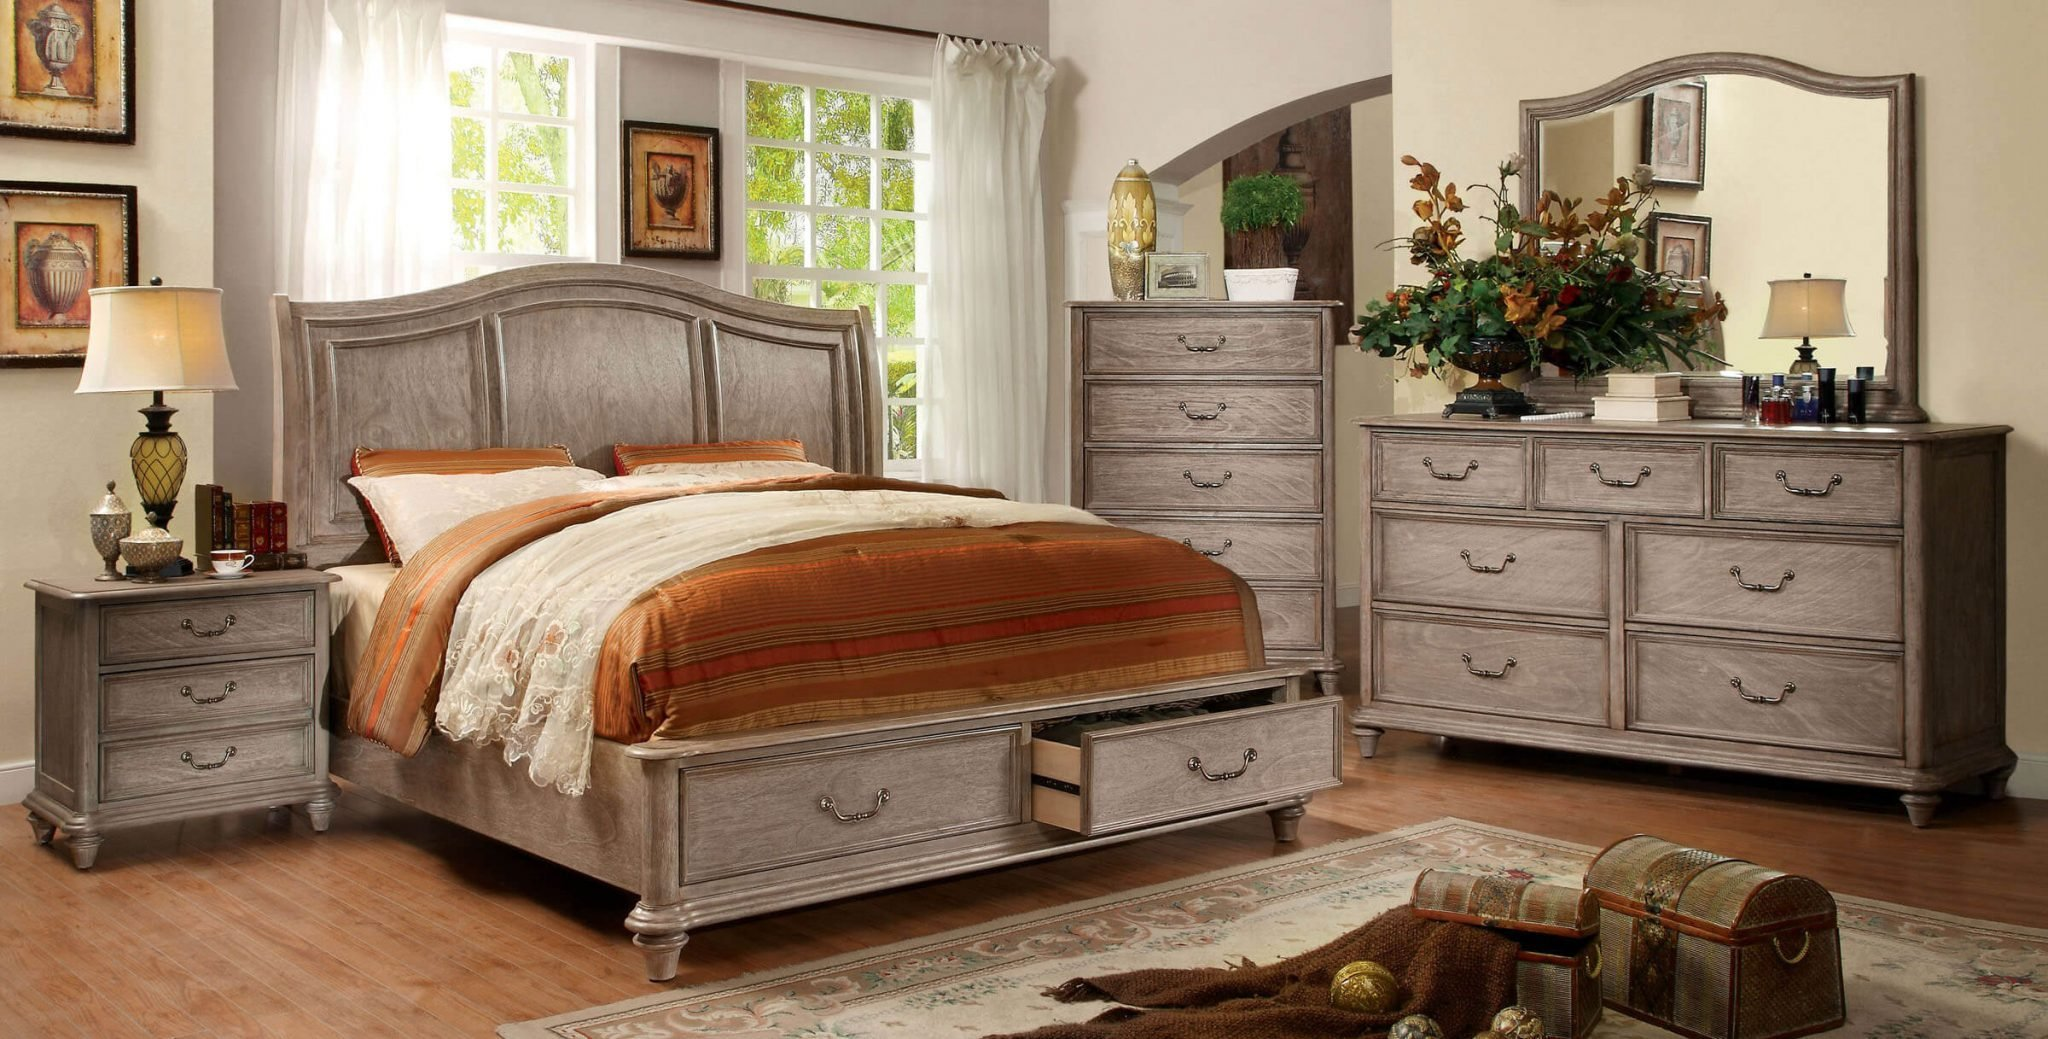 Best 4 Piece Belgrade I Platform Rustic Storage Bedroom Set Cm7613 With Pictures